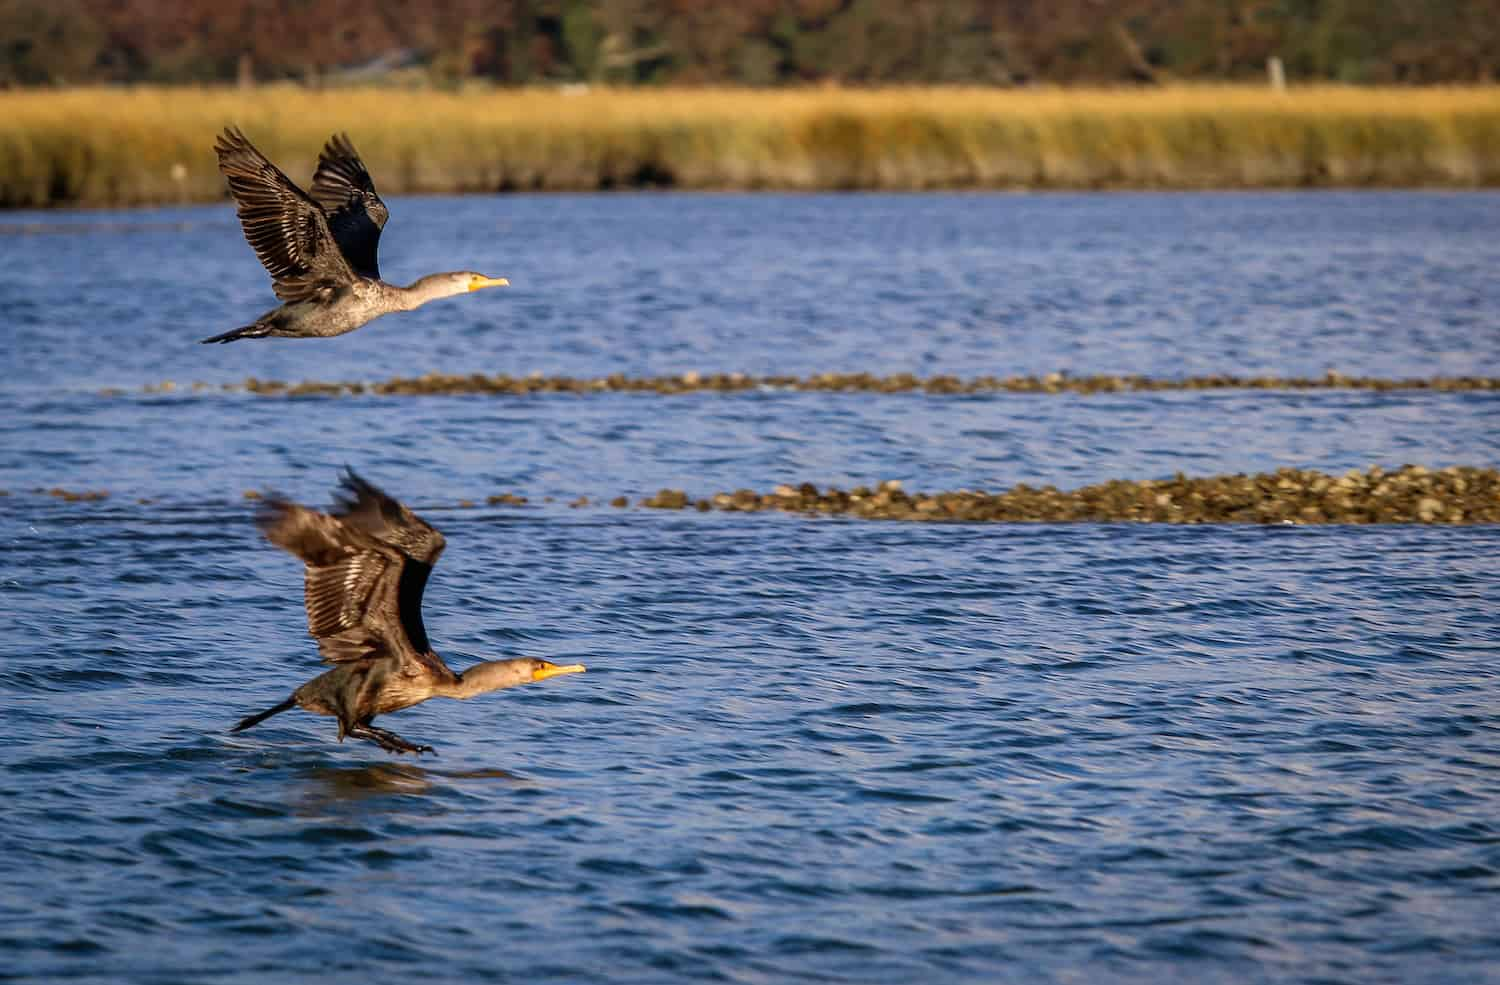 Cormorants in Lynnhaven River, Virginia